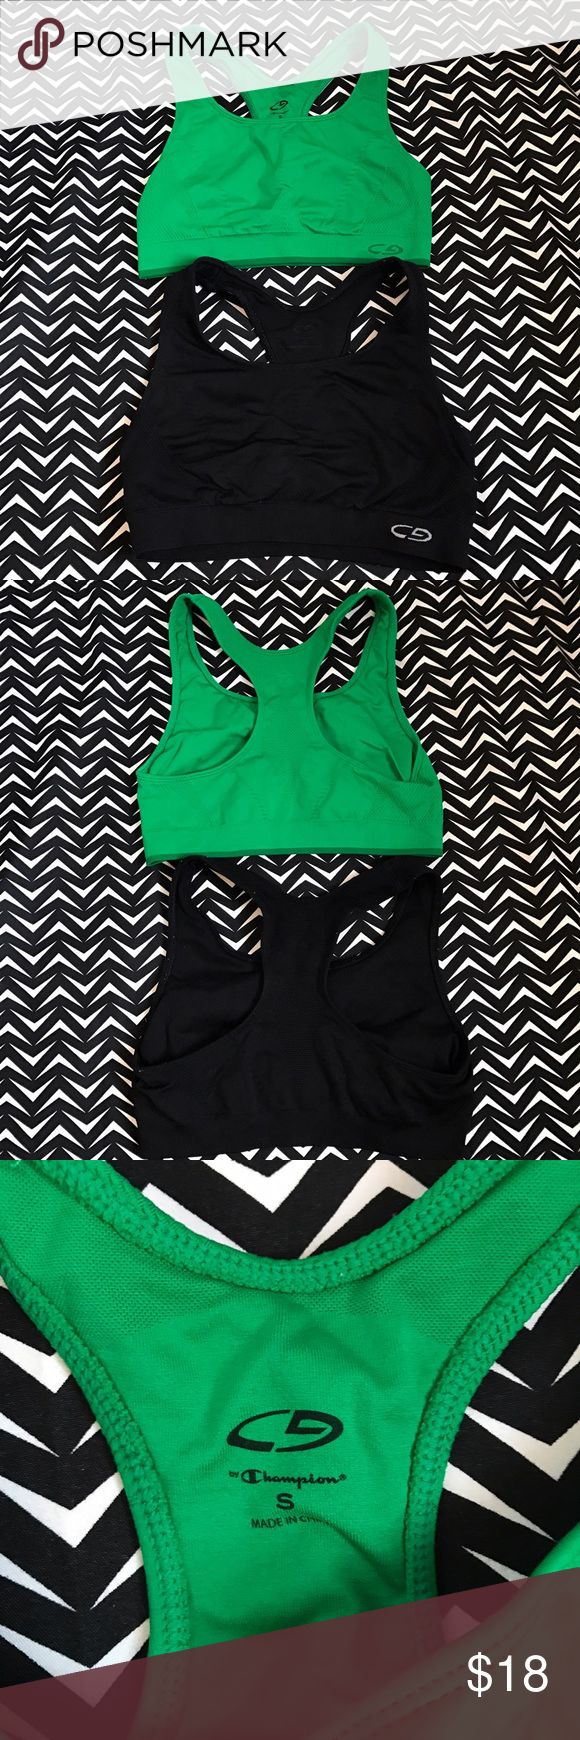 2 champion sports bras bundle Great used condition champion sports Bras. 1 green 1 black. Both size small. Super comfy!! No padding Champion Intimates & Sleepwear Bras